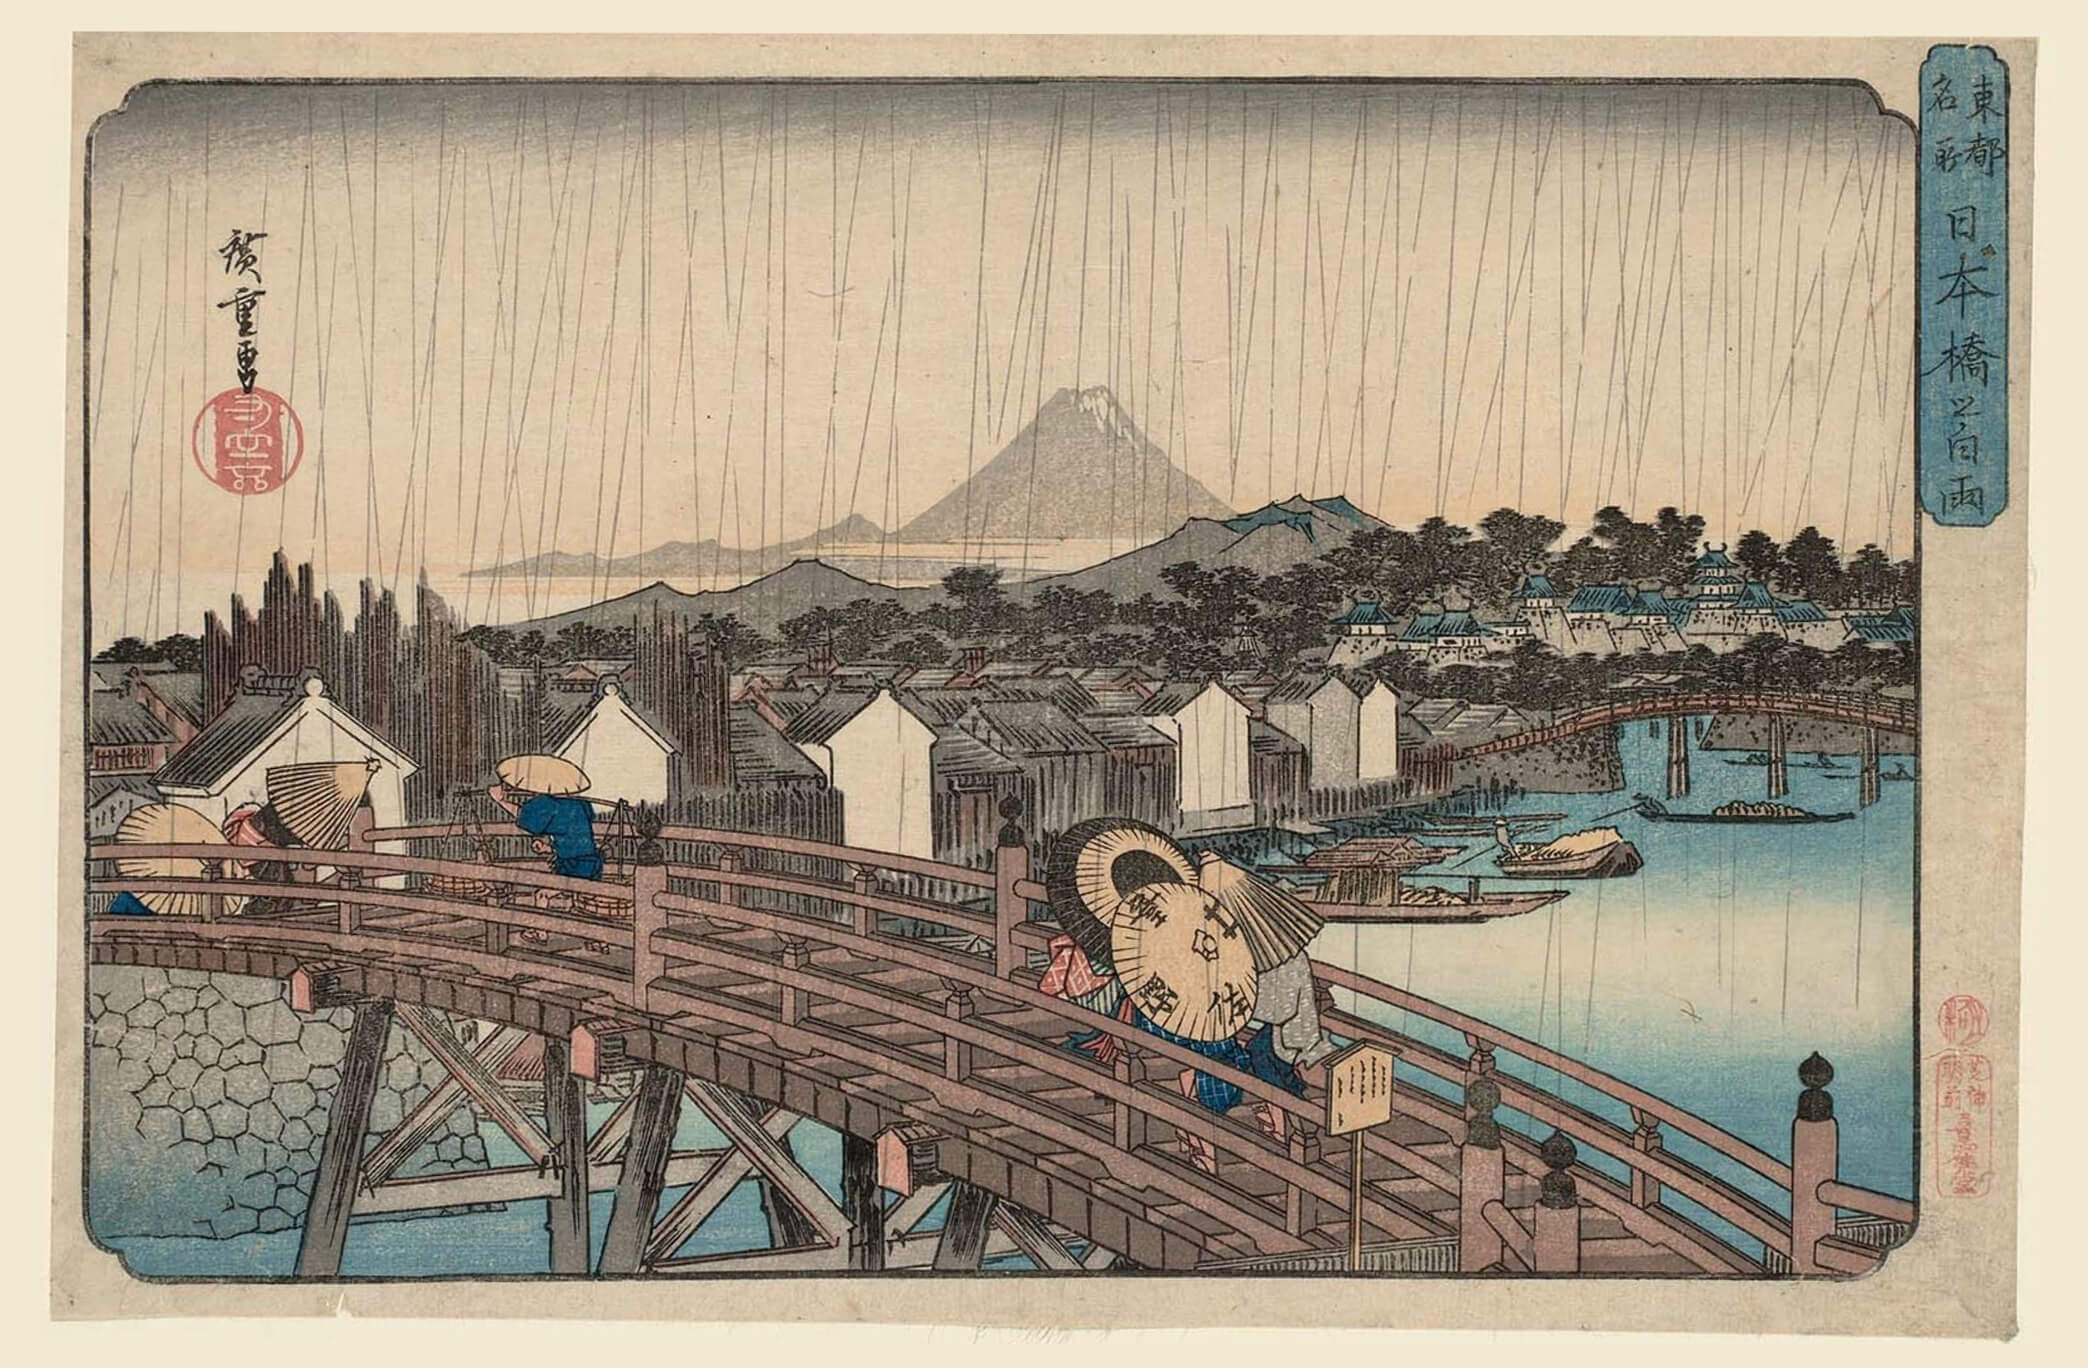 Frank Lloyd Wright Prints Framed Wright Curates First Hiroshige Exhibition In Us Frank